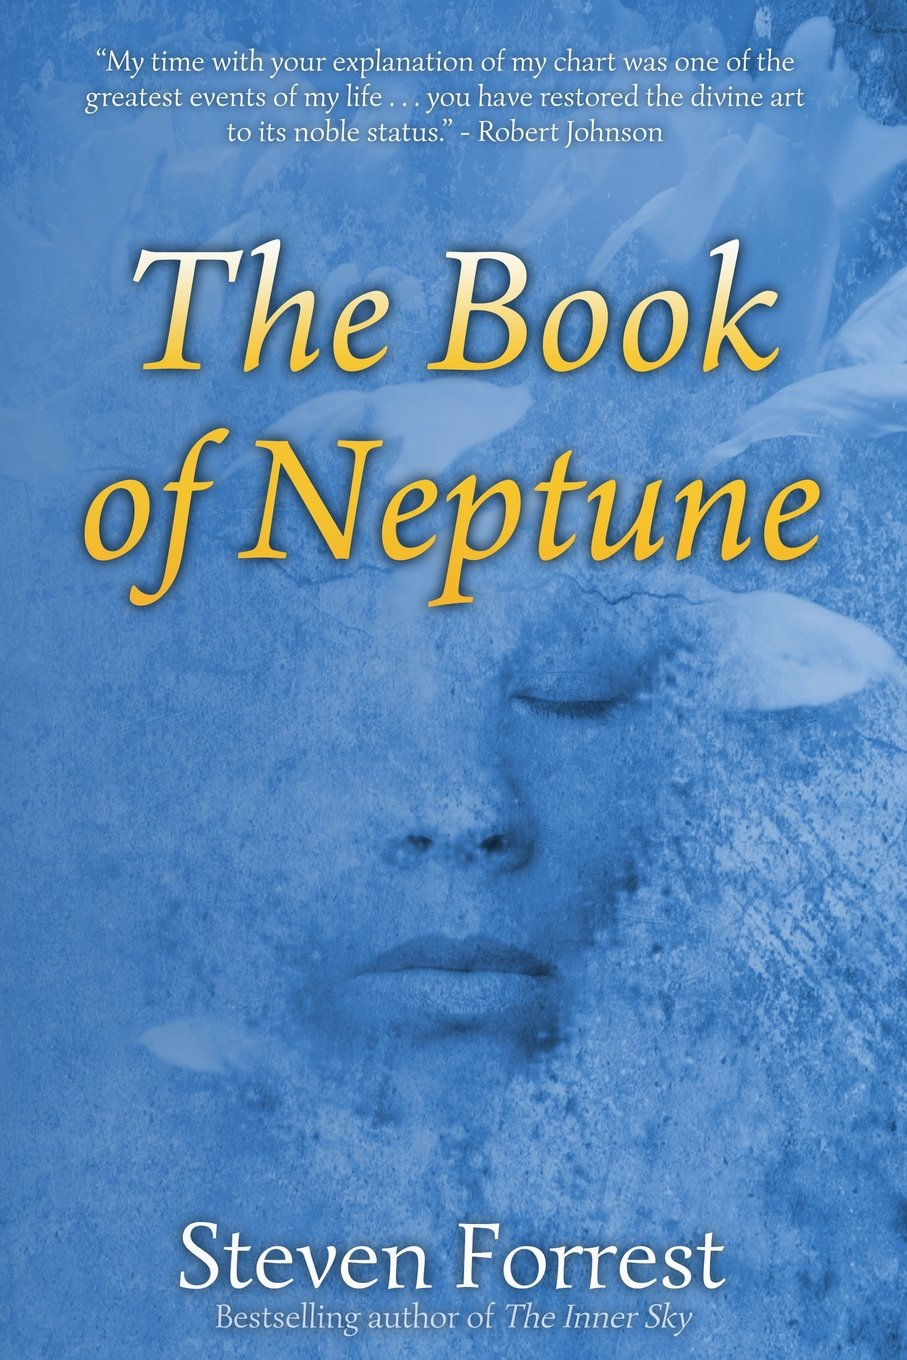 The Book of Neptune: Steven Forrest: 9781939510914: Amazon